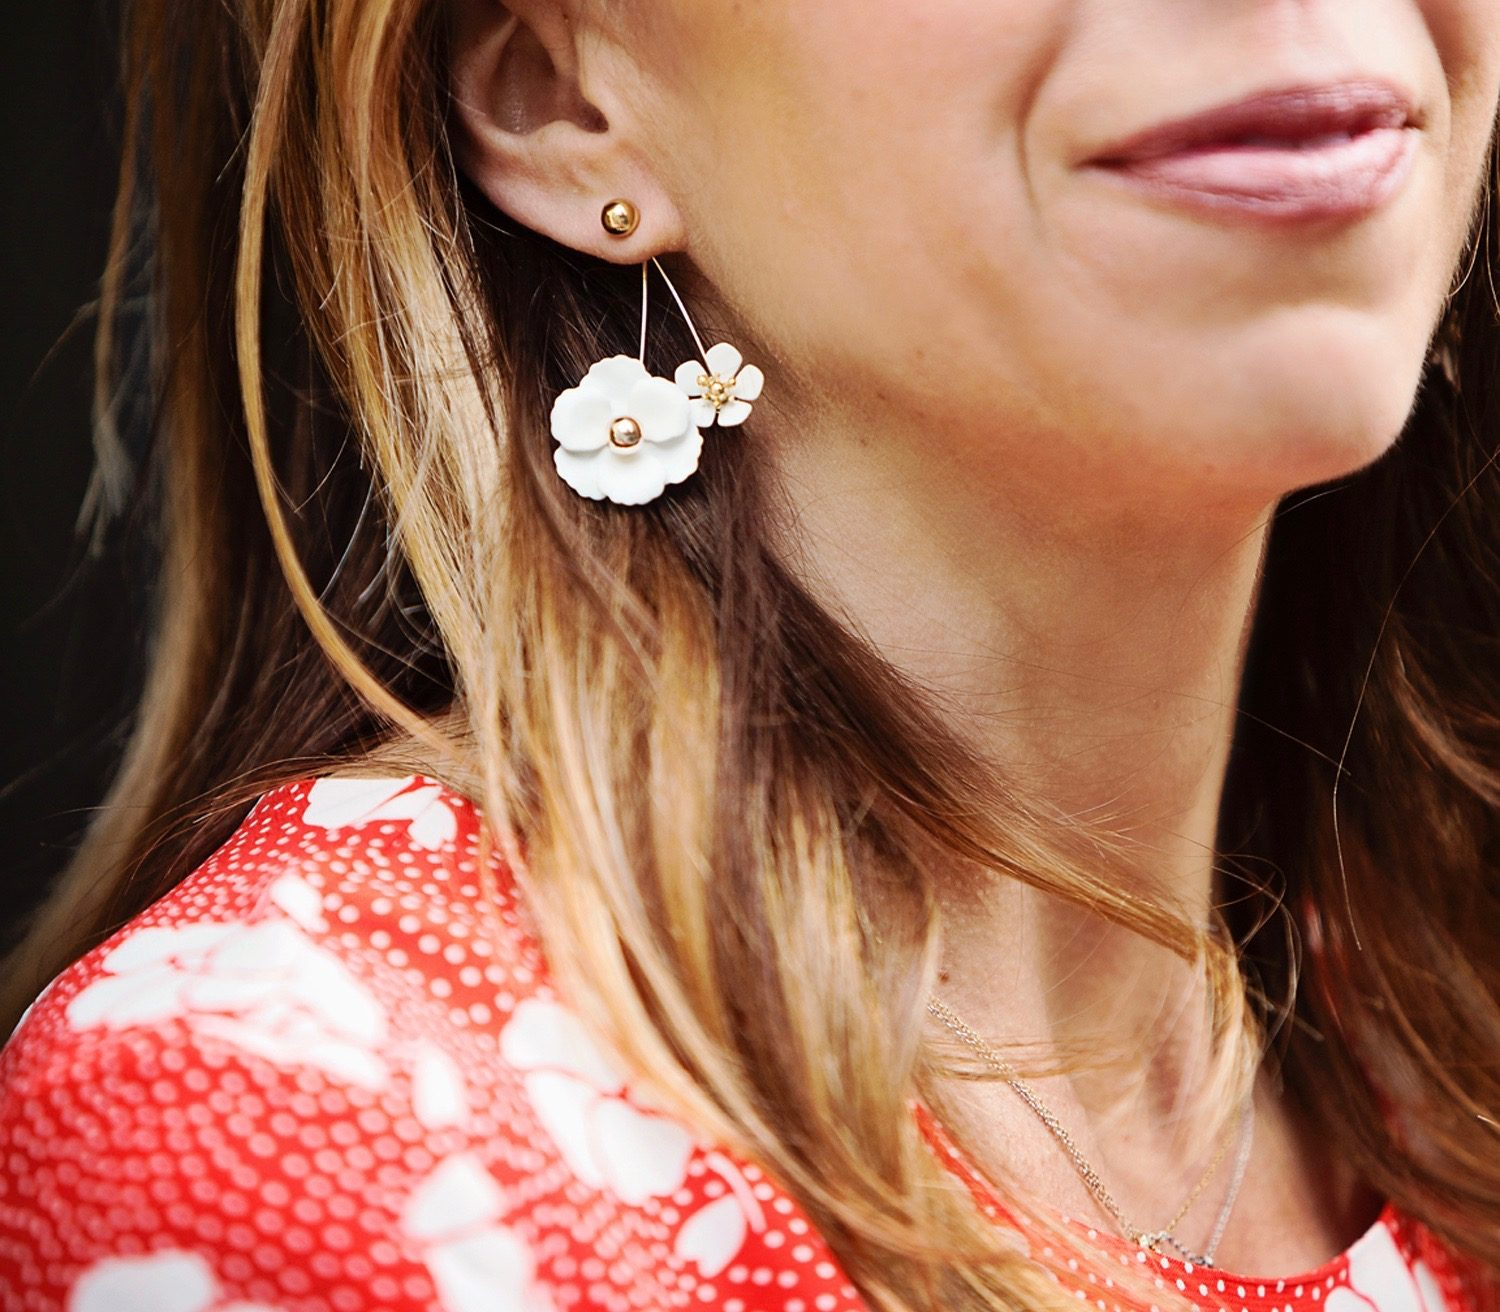 The Motherchic wearing floral earrings